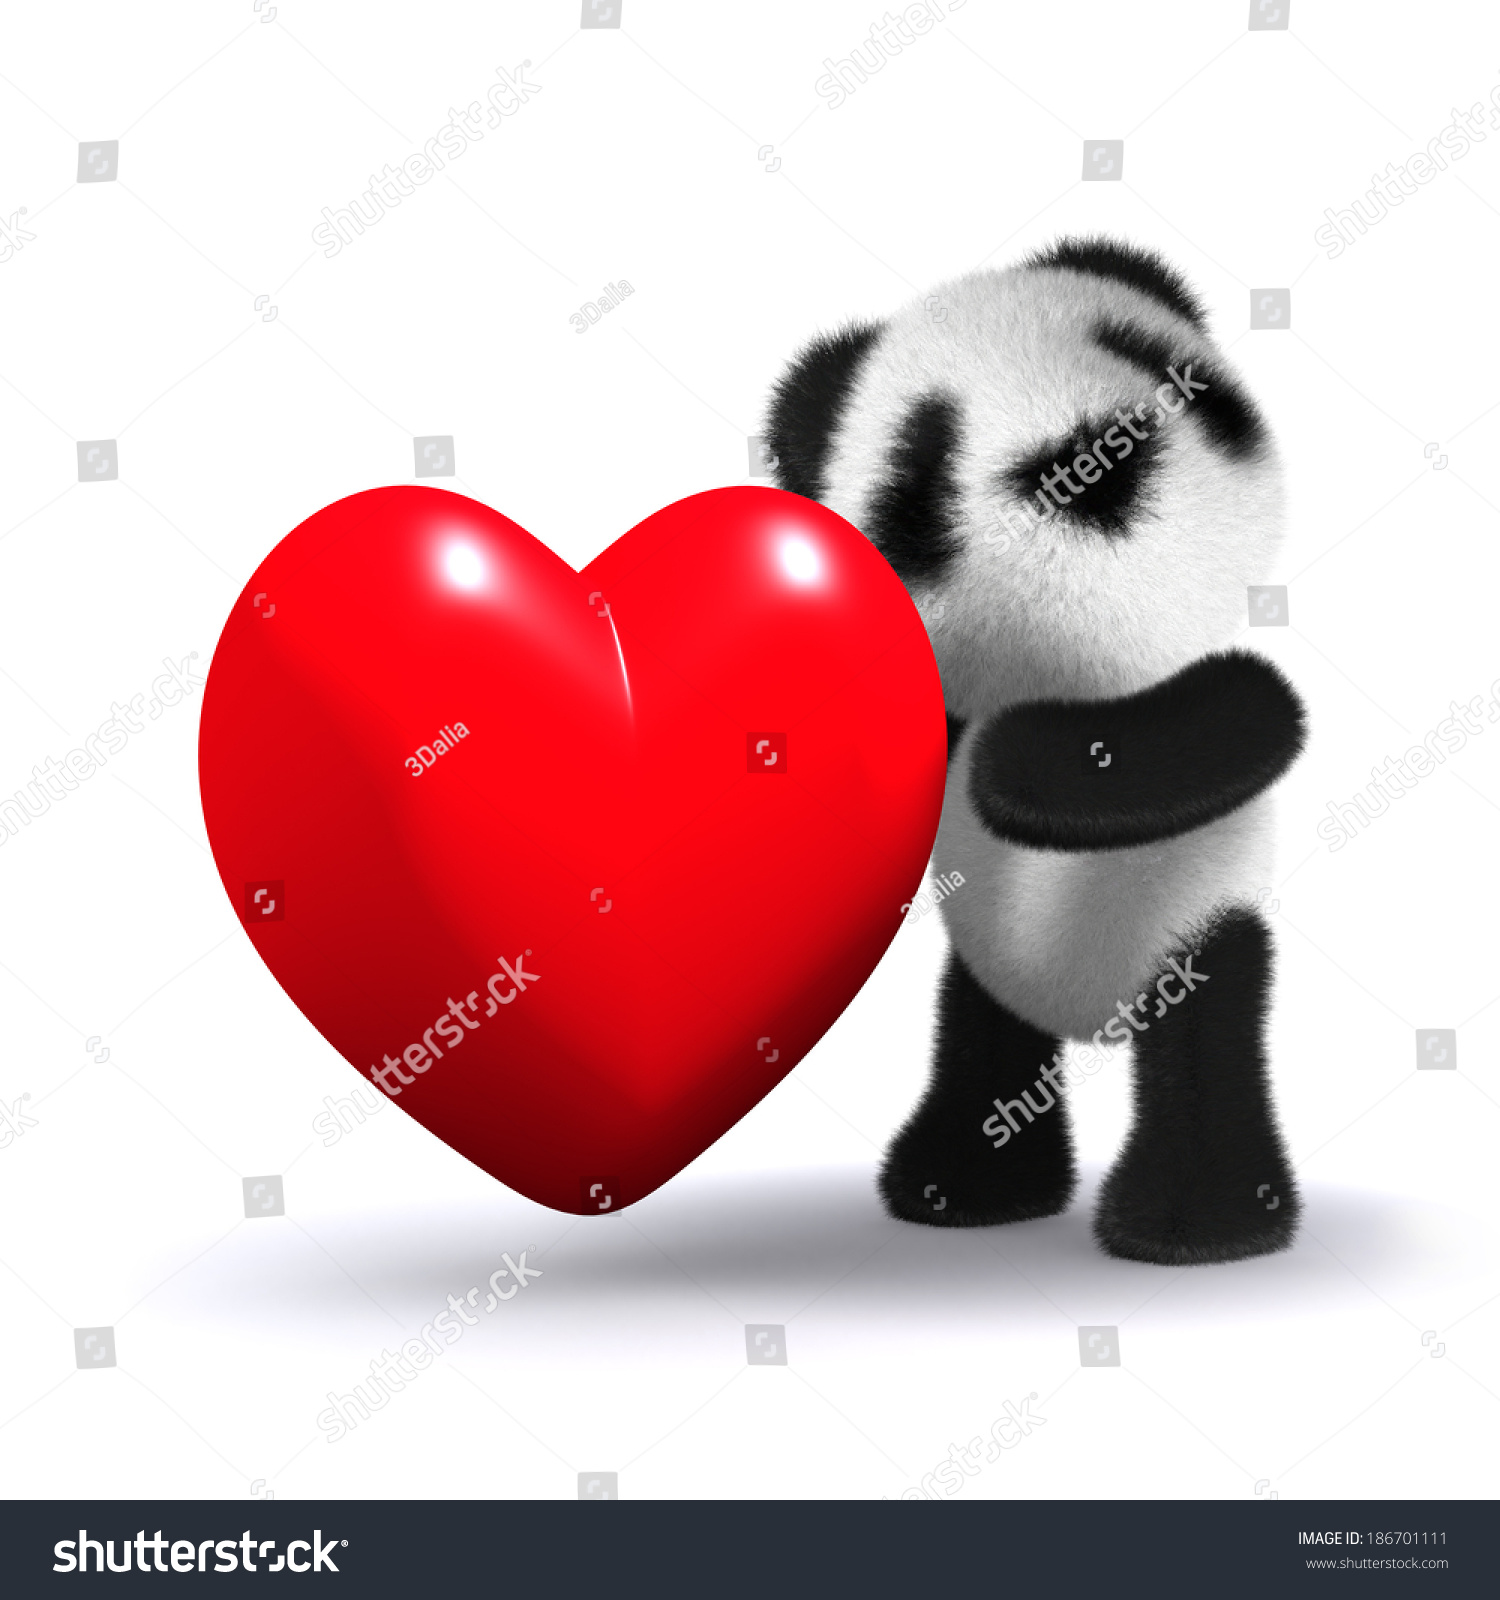 3D render of baby panda cuddling a red heart